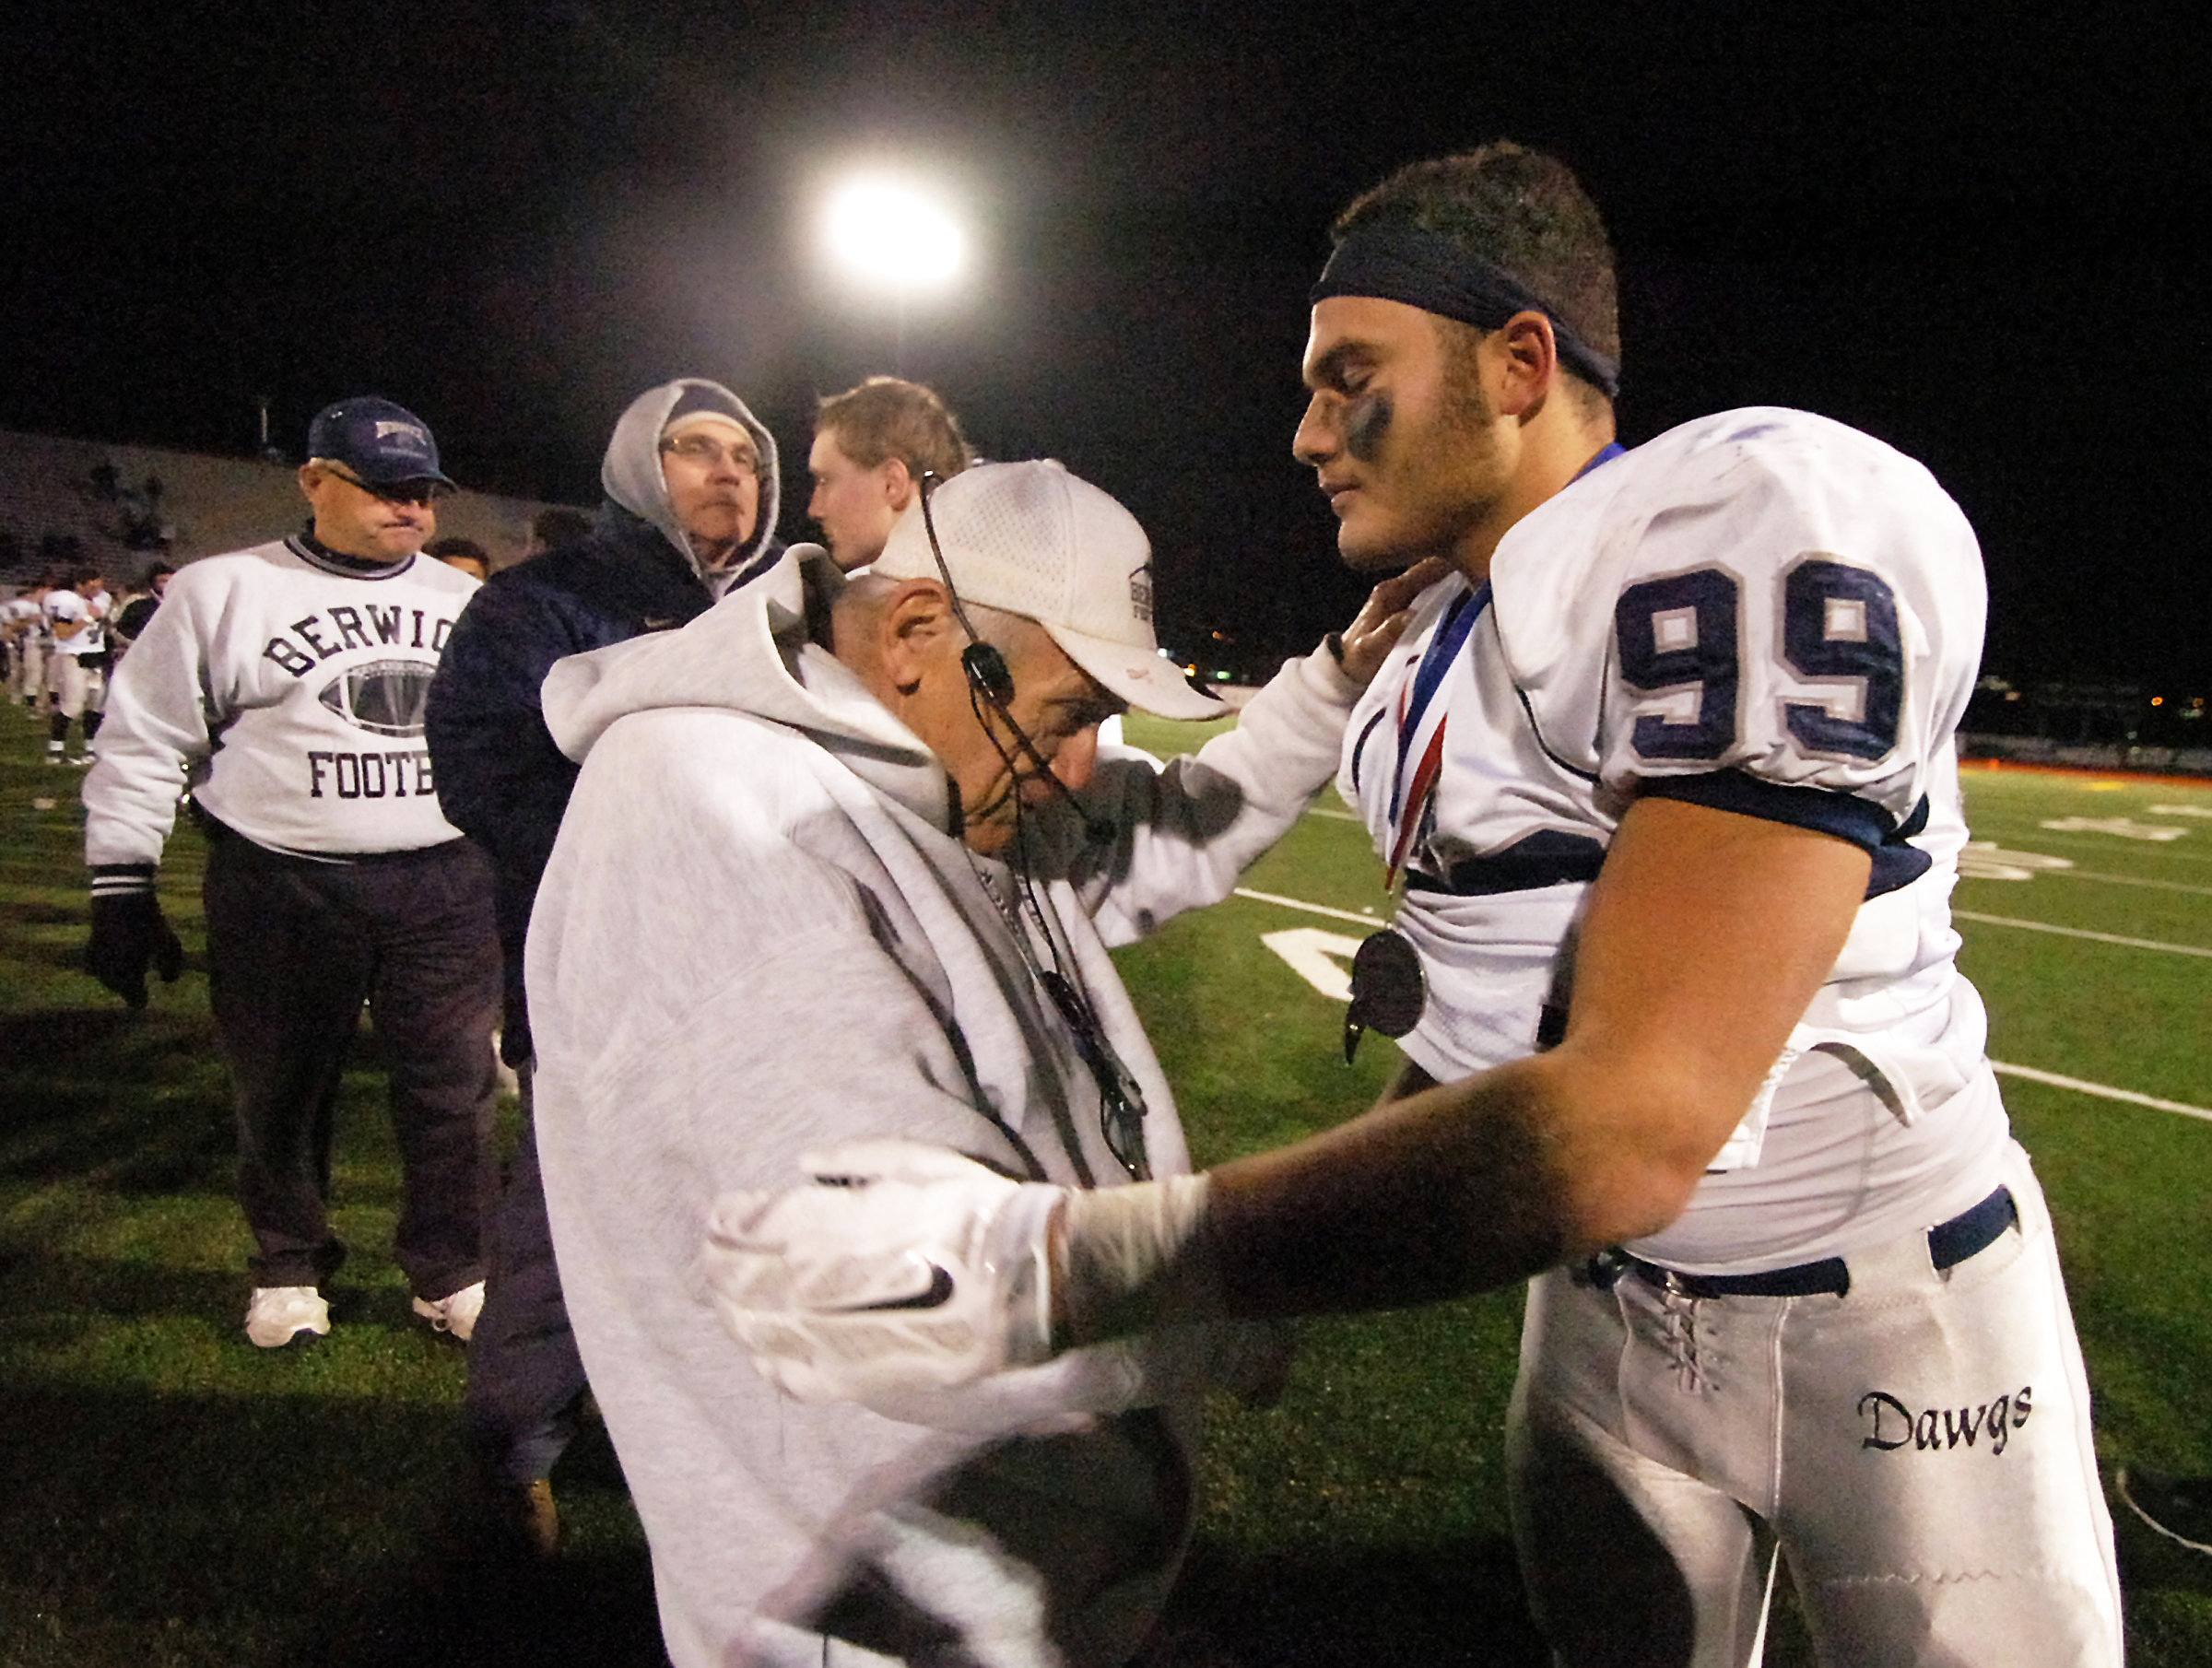 Berwick High School football head coach George Curry, the winningest high school football coach in Pennsylvania history, consoles junior Kyle Roberts after their District 2 Class AAA playoff loss to Scranton Prep (Photo: Butch Comegys, The Times & Tribune via AP)